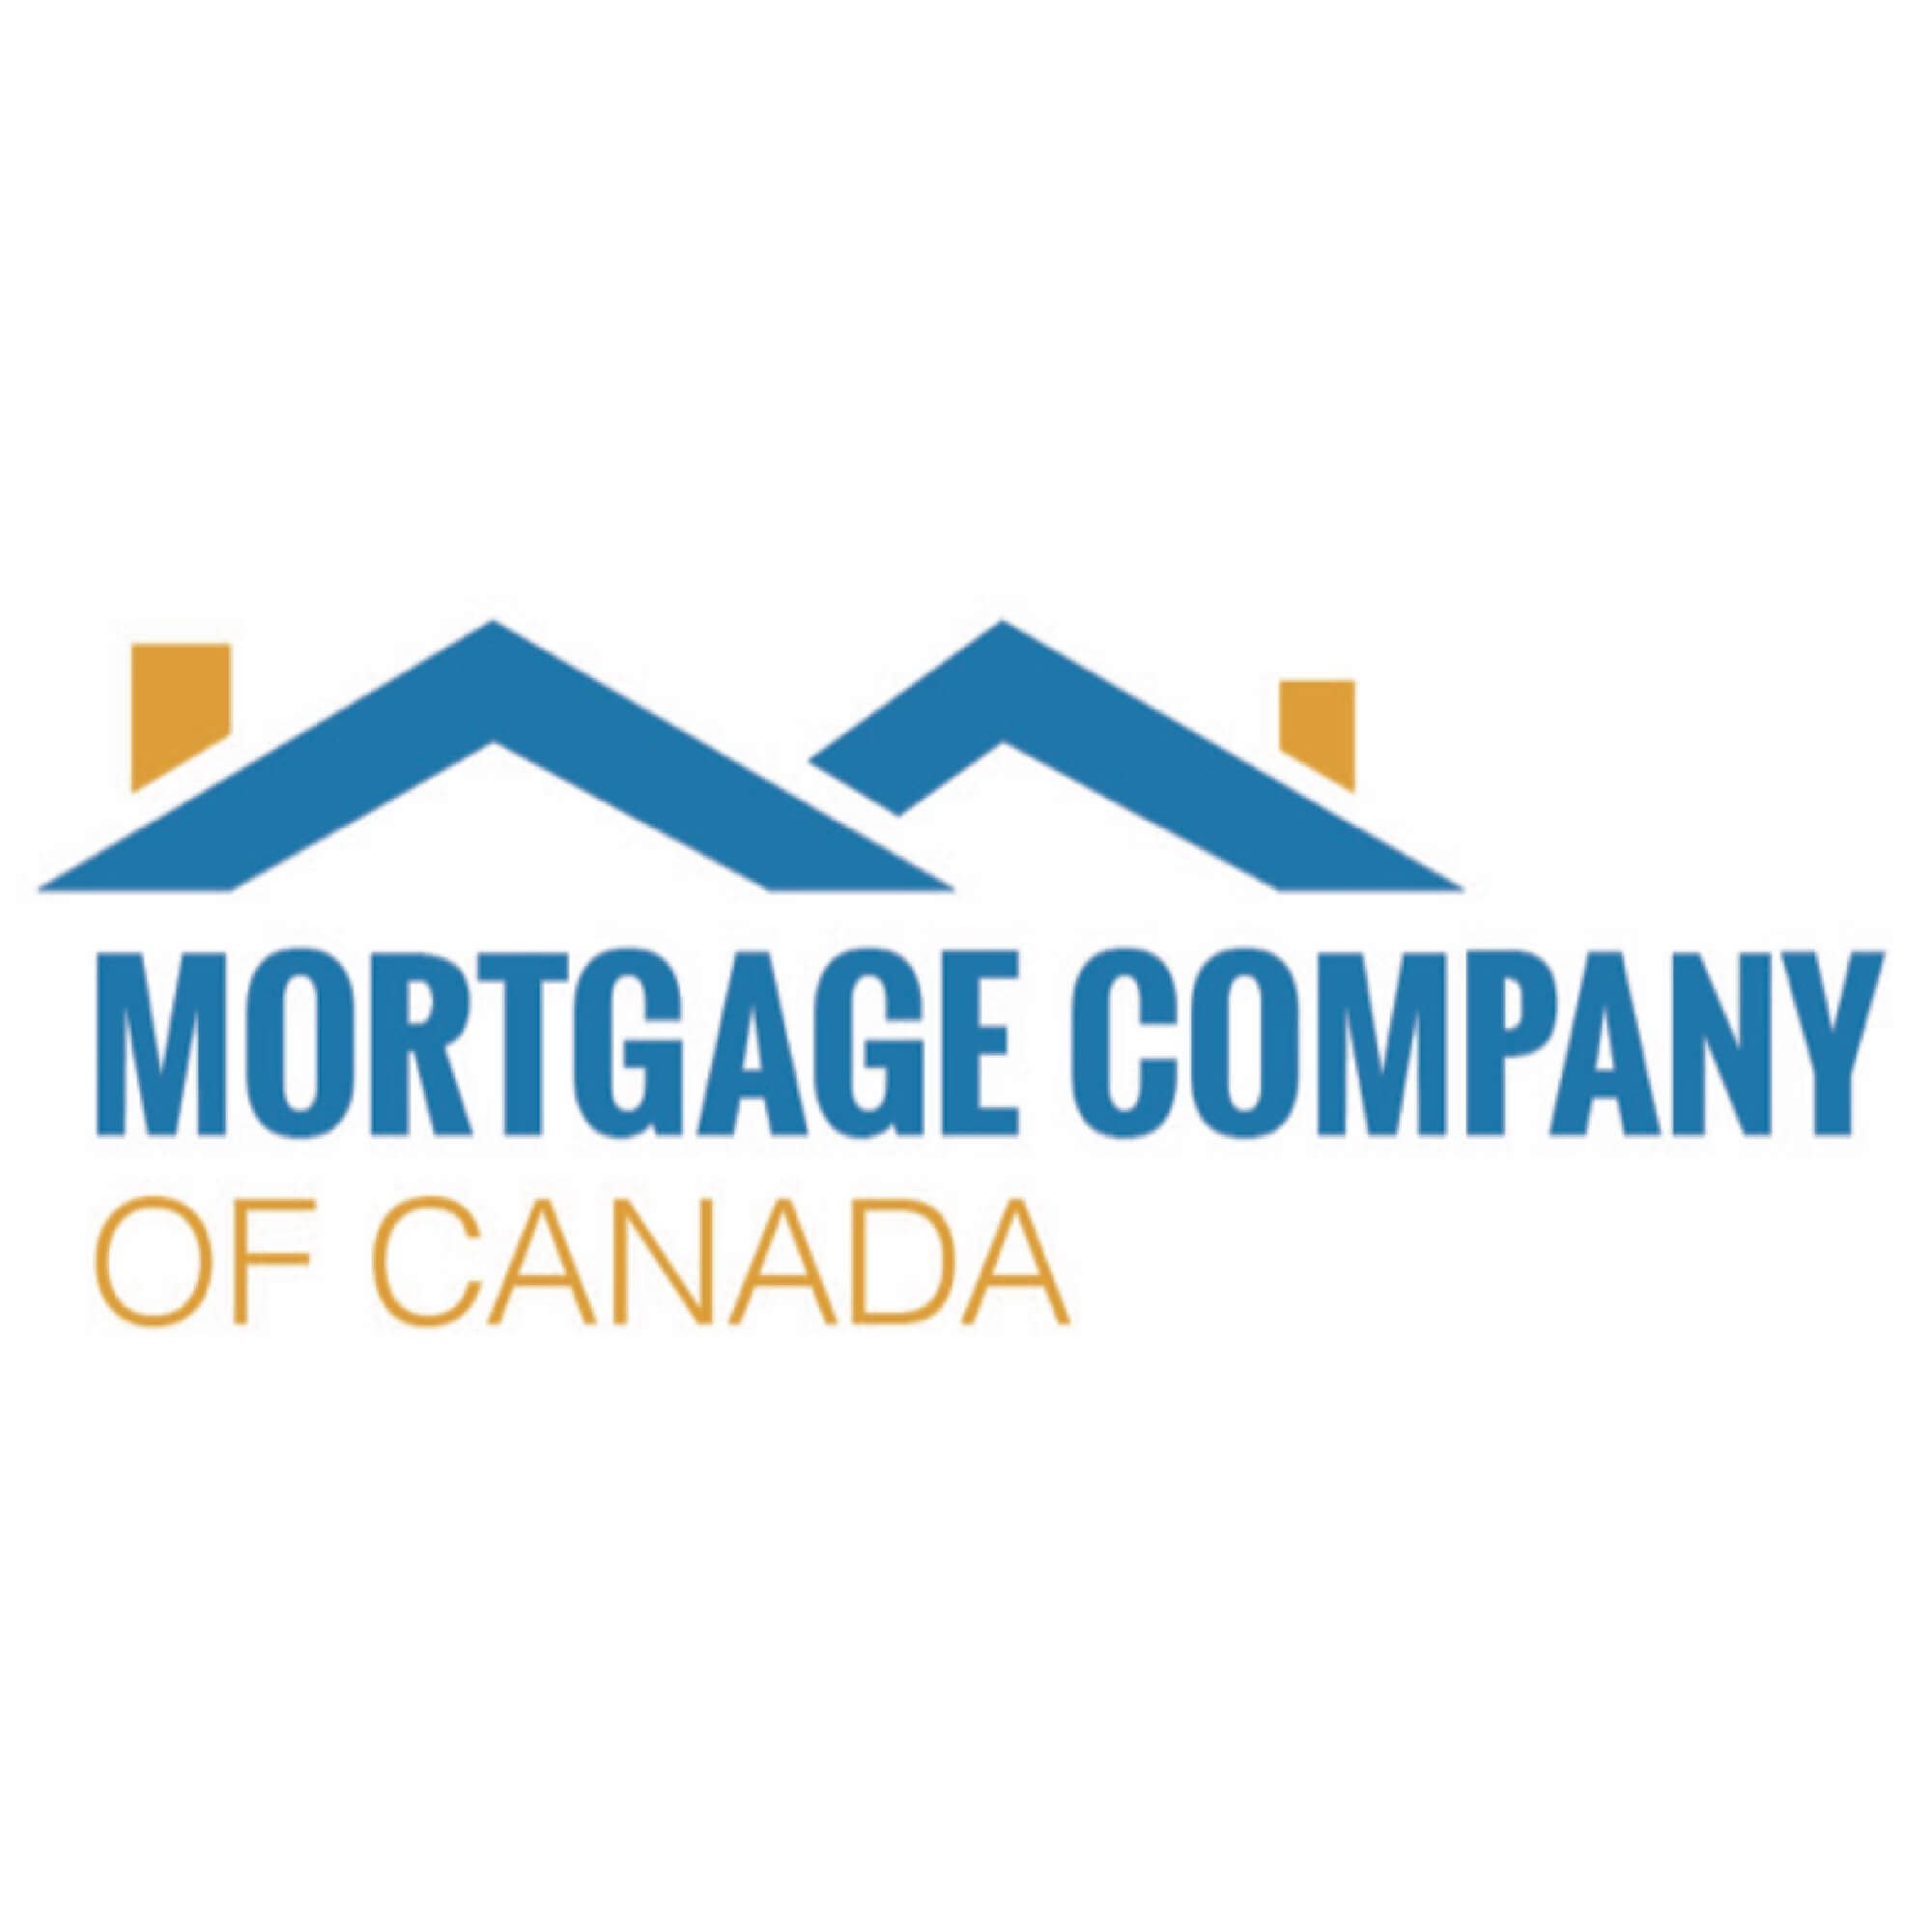 mortgage company of canada